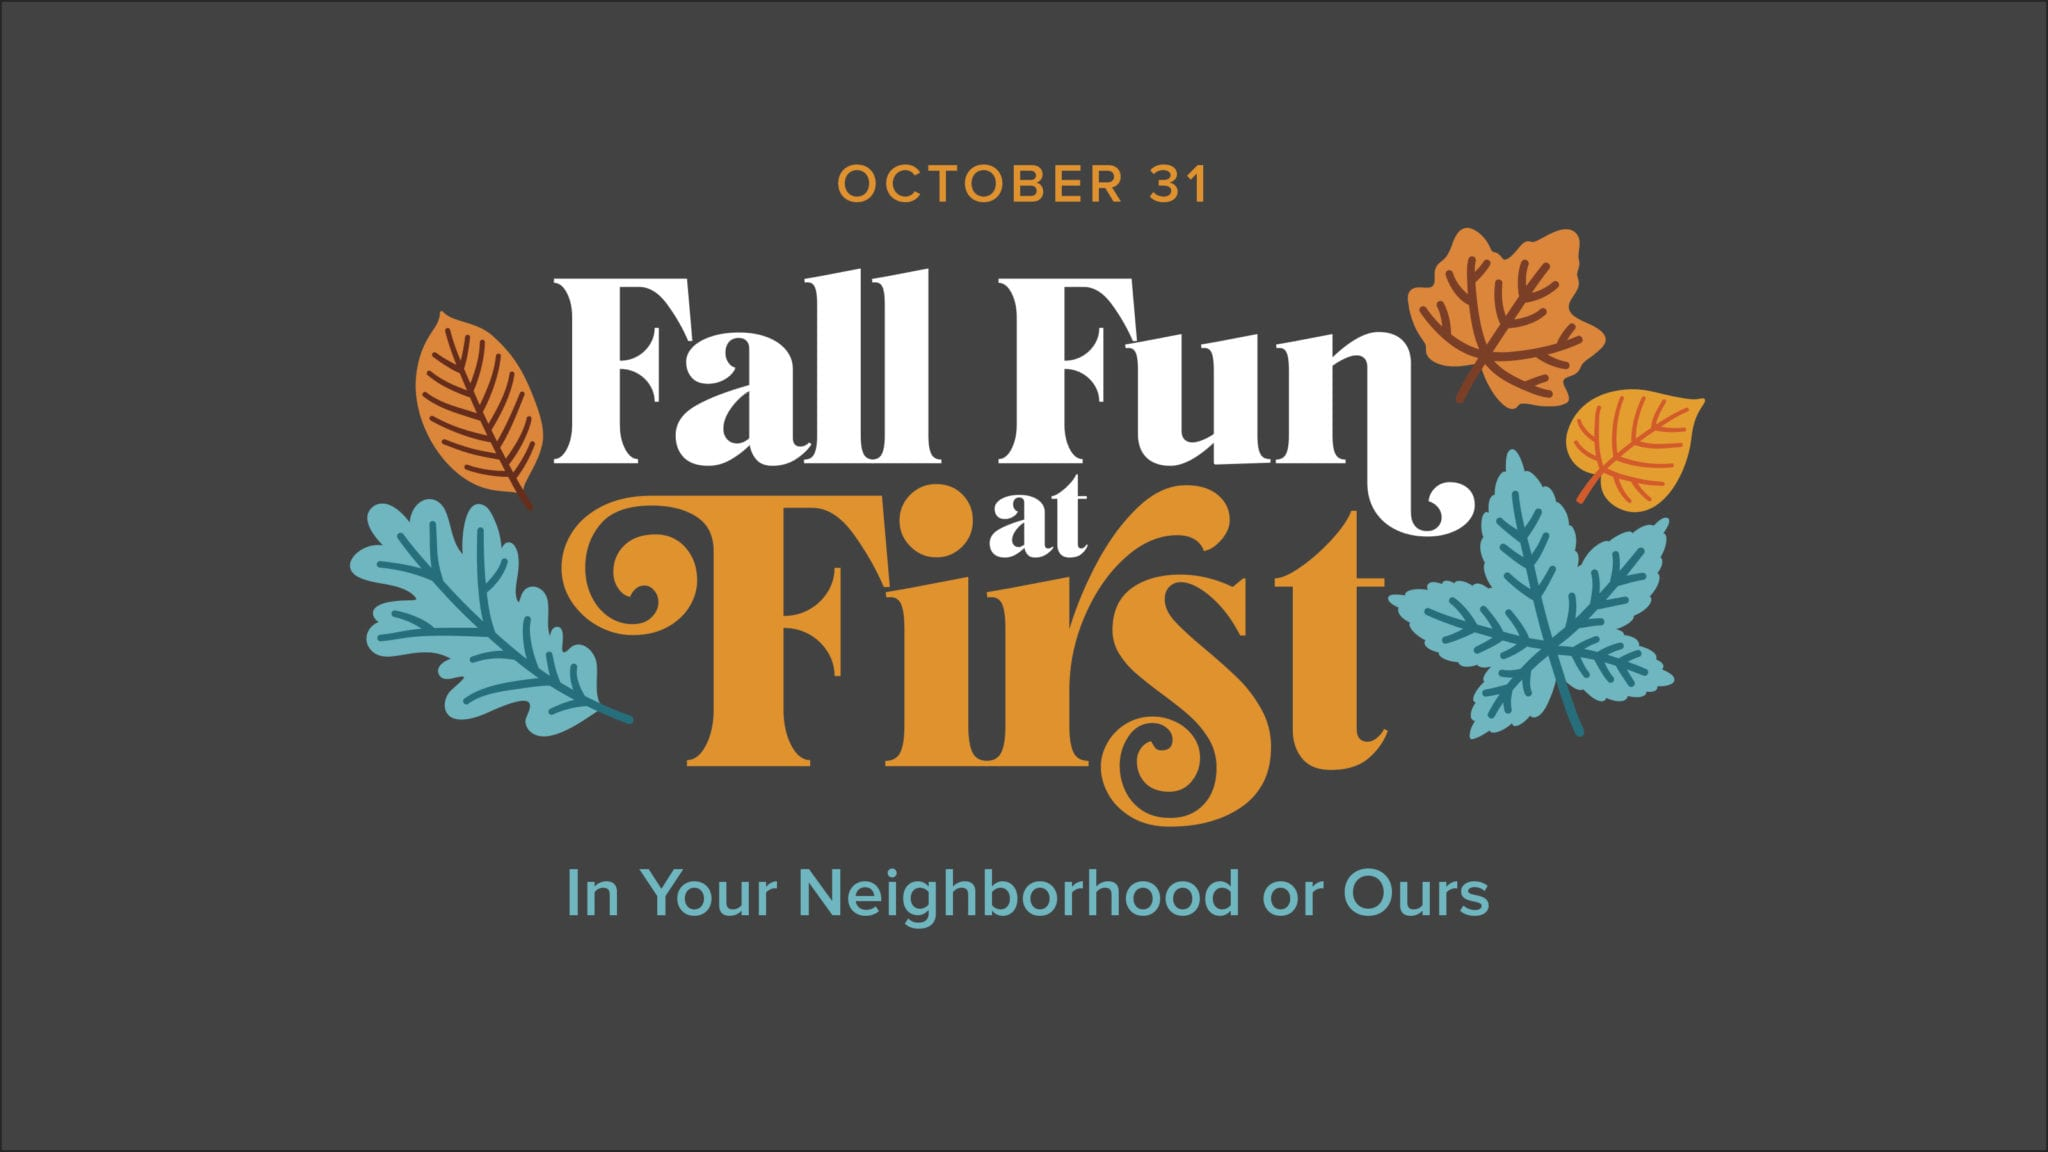 Fall Fun at First